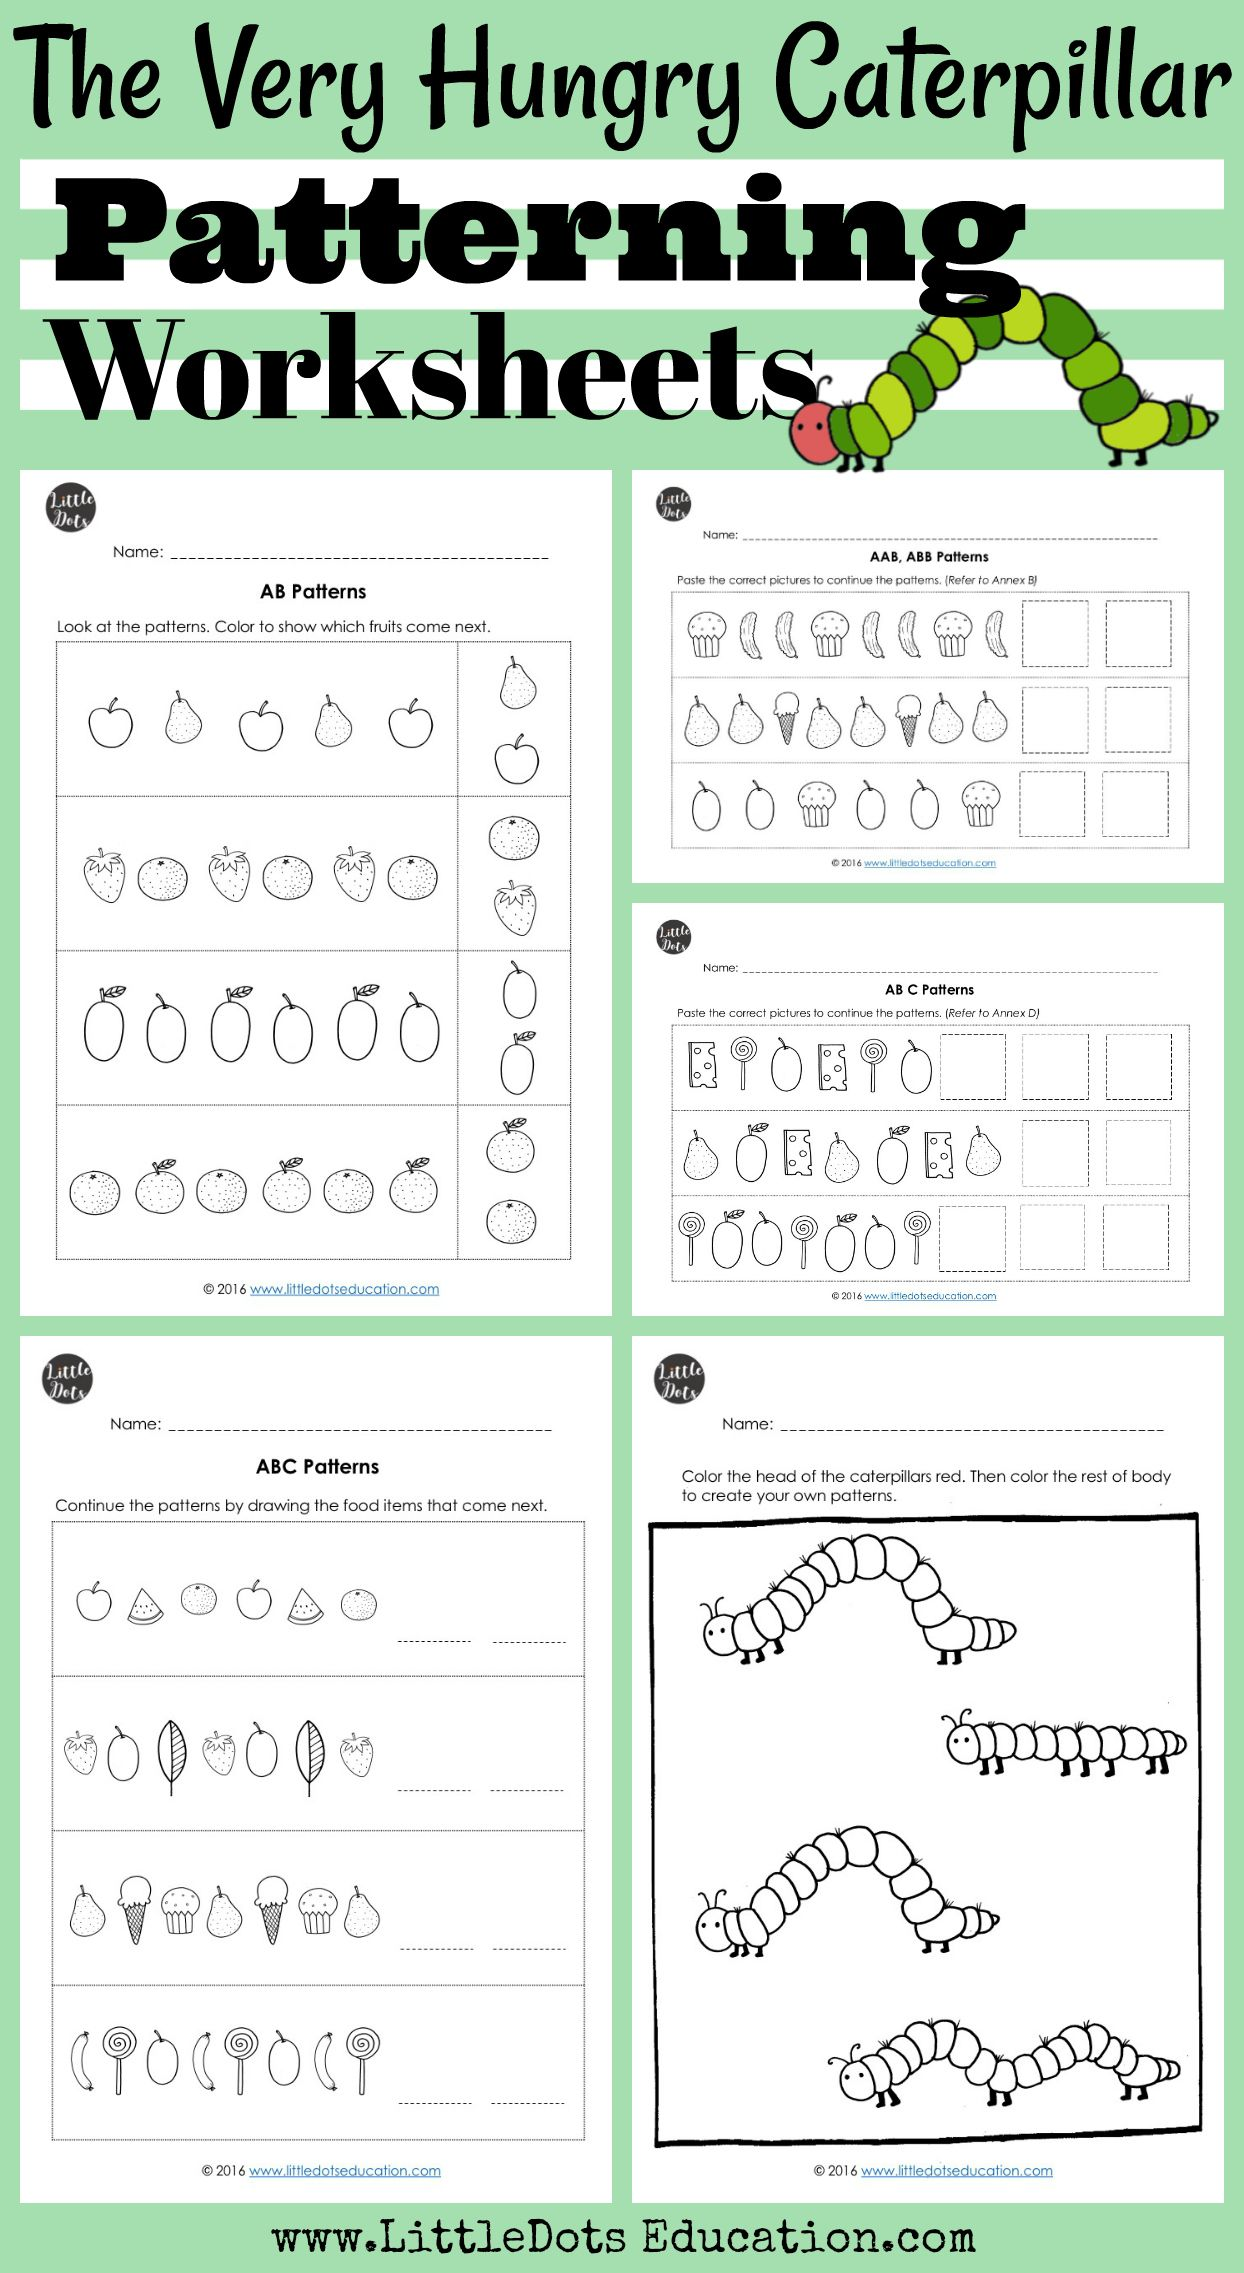 The Very Hungry Caterpillar Theme Patterning Worksheets And Activitie Ab Pattern Worksheet Pattern Worksheet Ab Patterns [ 2273 x 1244 Pixel ]